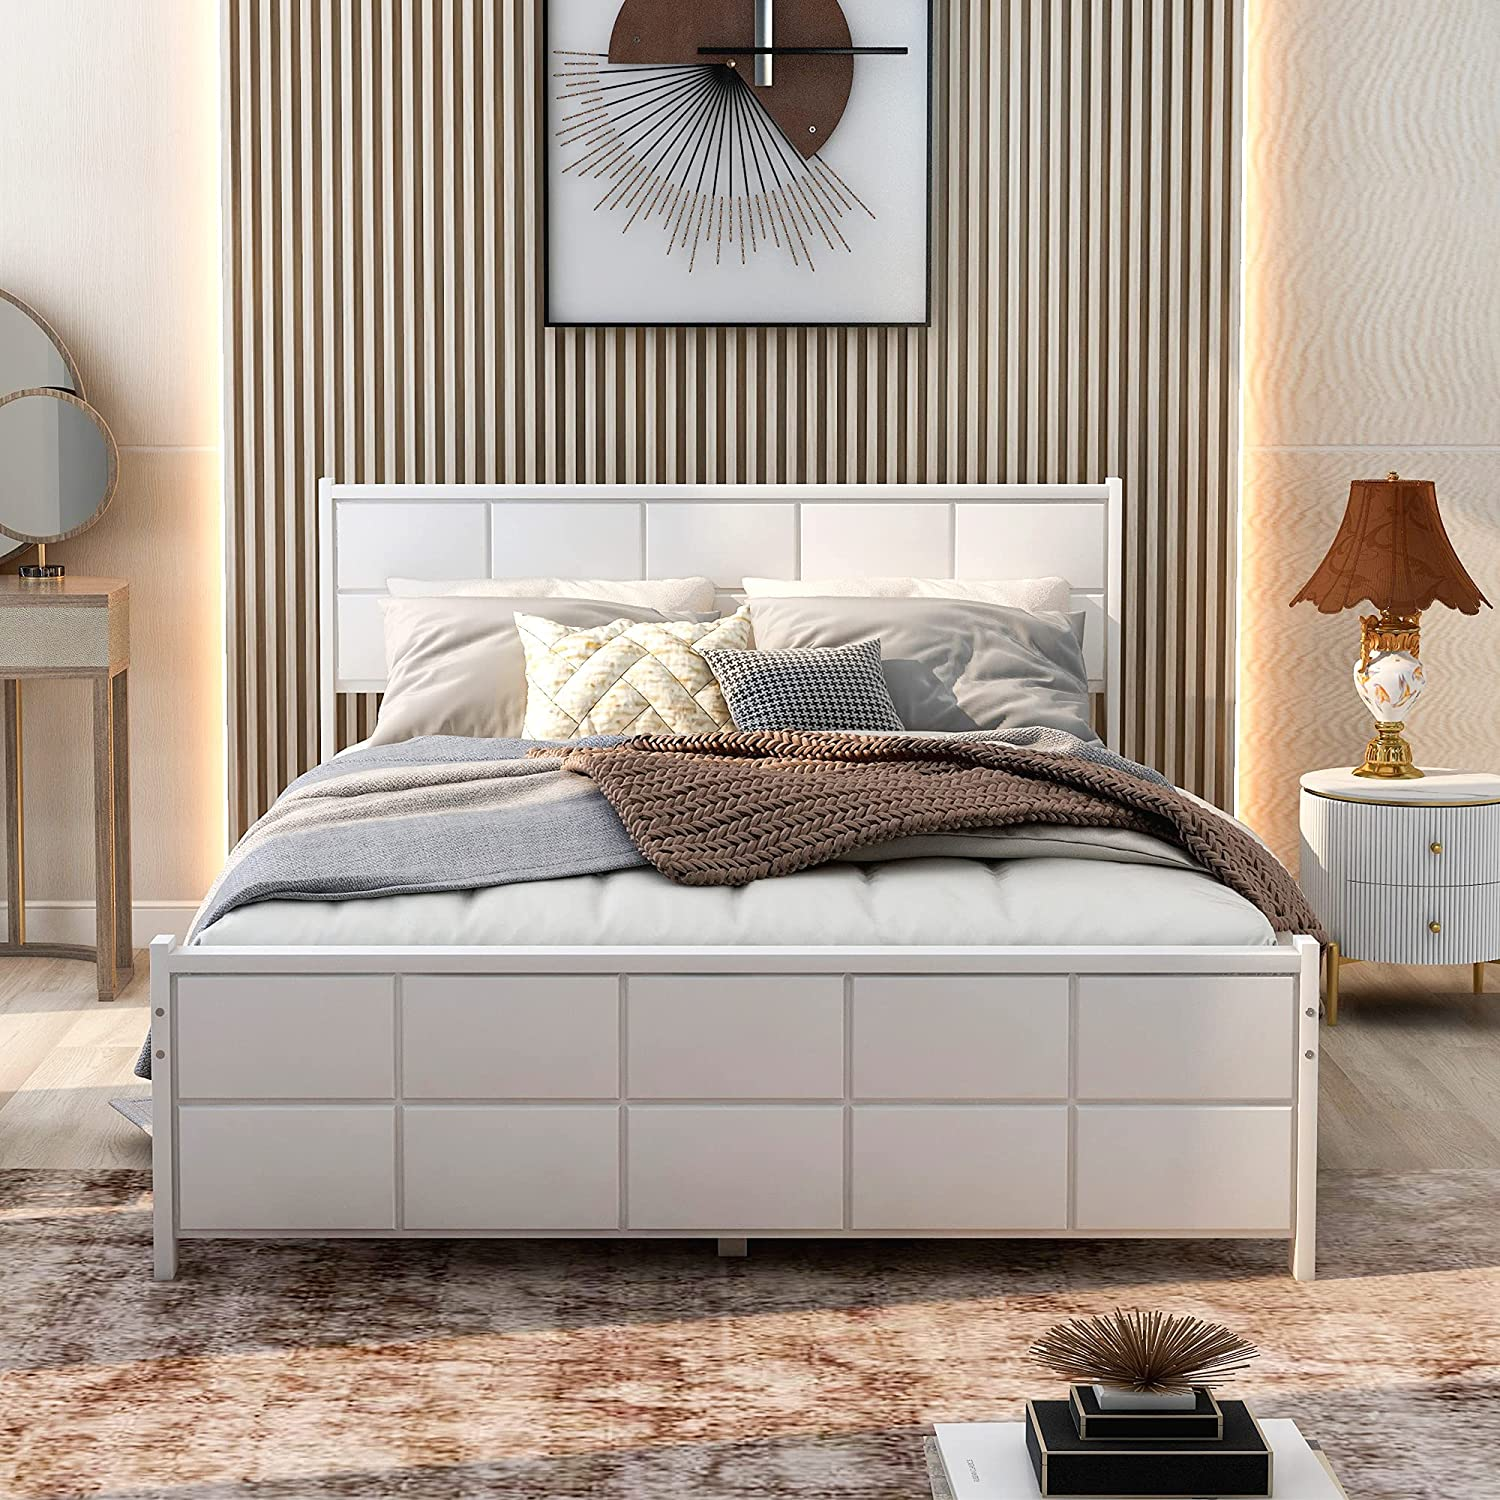 Wood Platform Bed Frame with White Be shopping Headboard Arlington Mall Footrest and